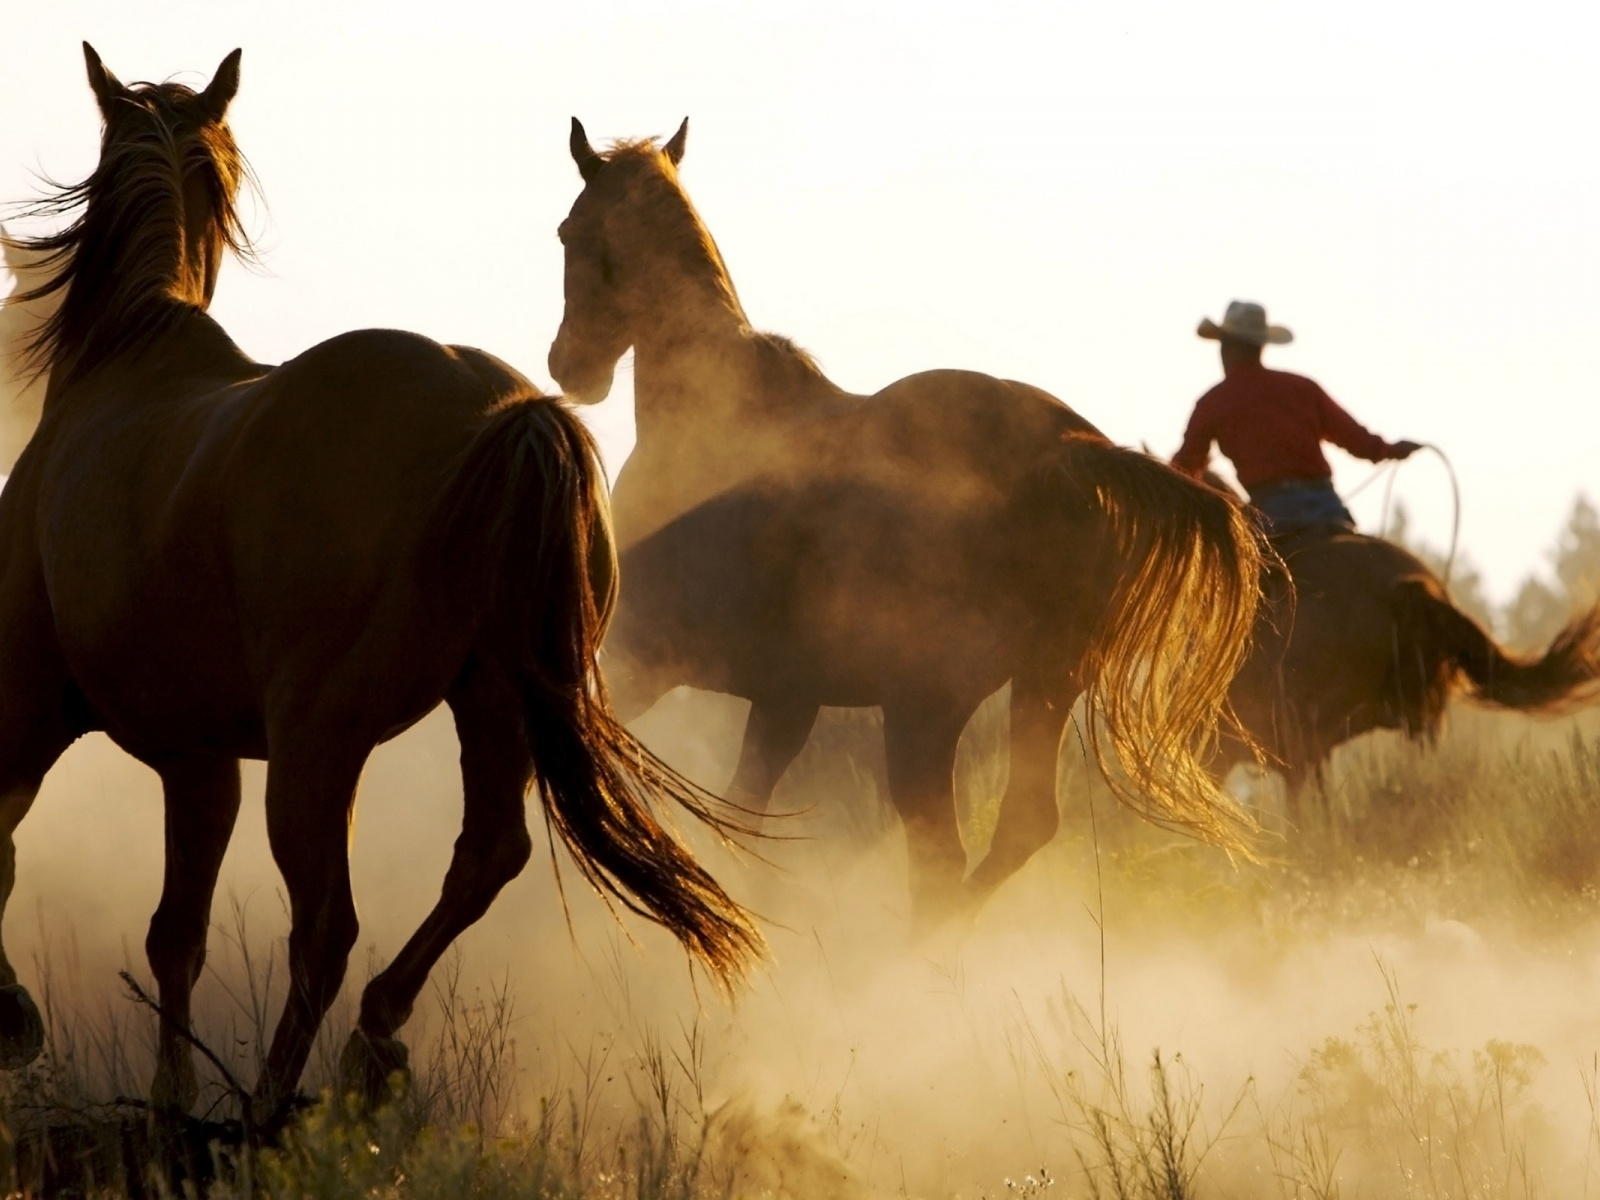 Cowgirls and horses wallpaper - photo#14